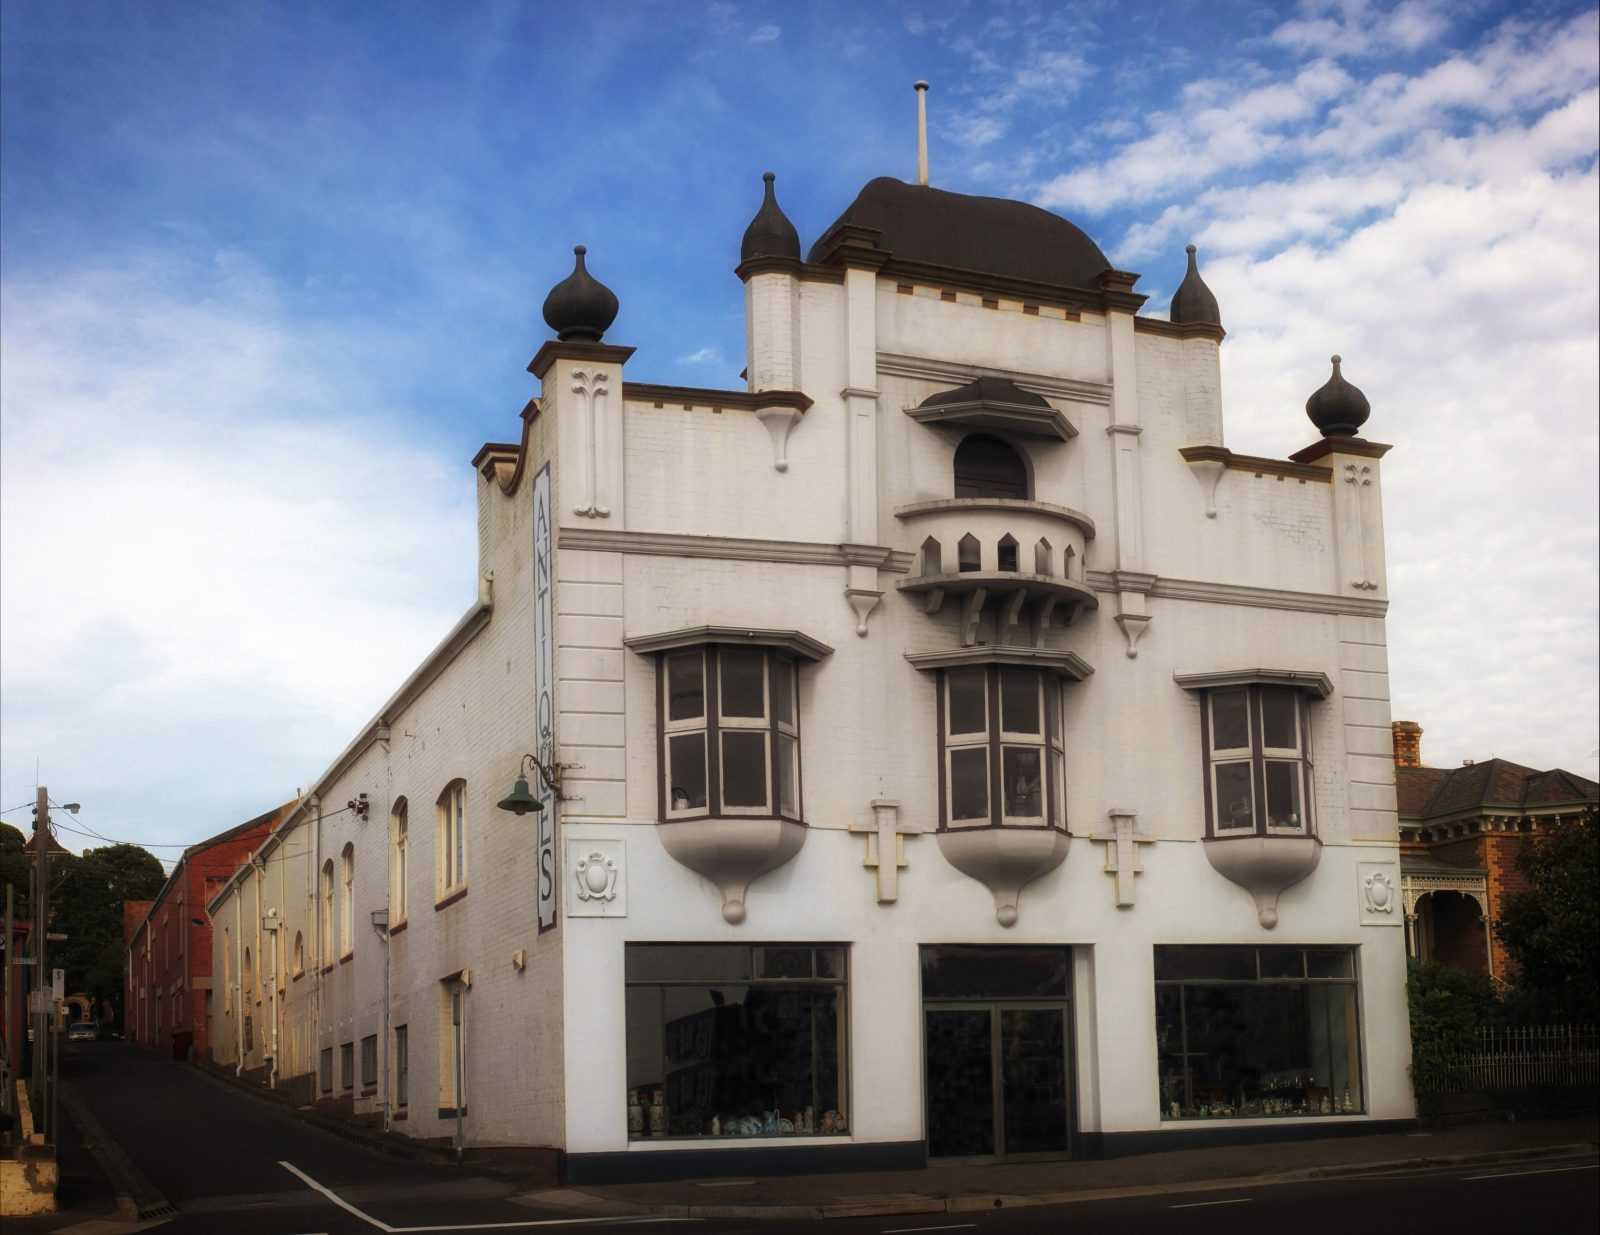 Moorabool Antique Galleries, situated in one of Geelong's most iconic historic buildings